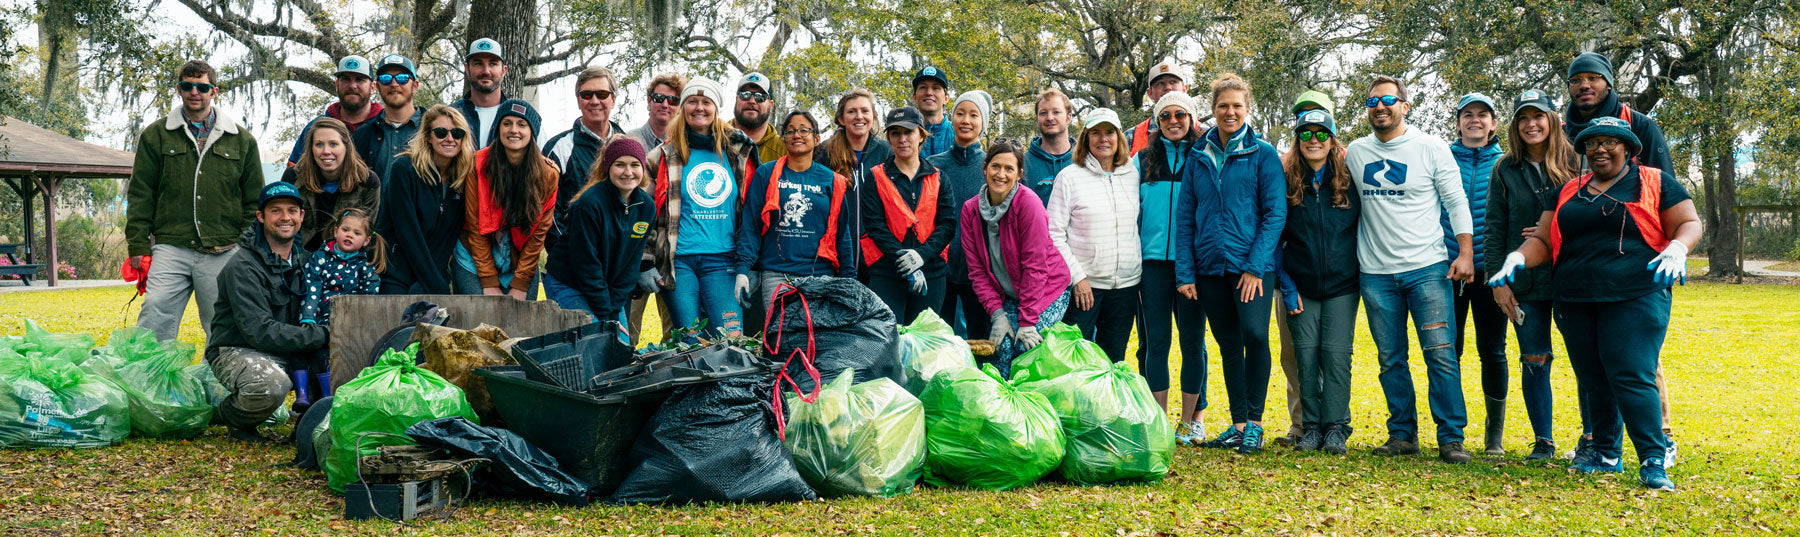 Rheos and Charleston Waterkeeper clean up event